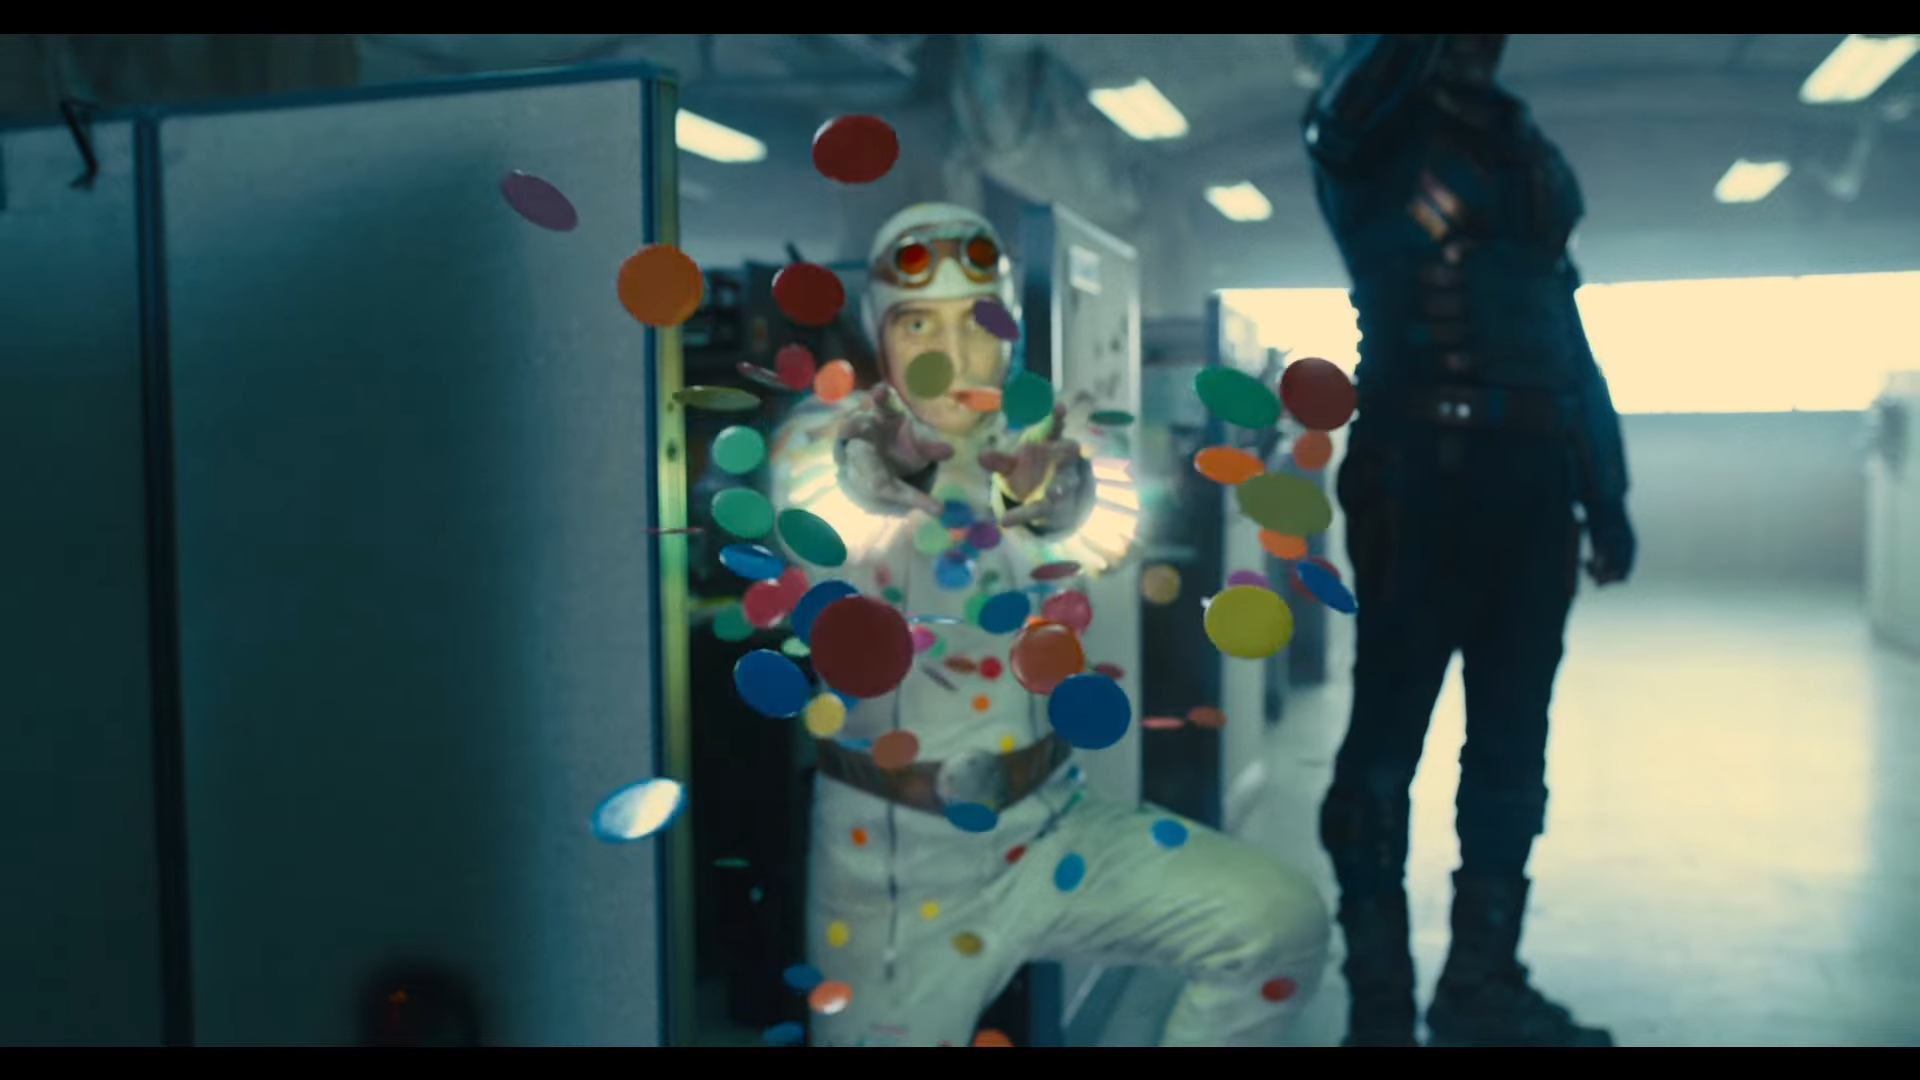 THE-SUICIDE-SQUAD-Rebellion-Trailer-1-16-screenshot-92